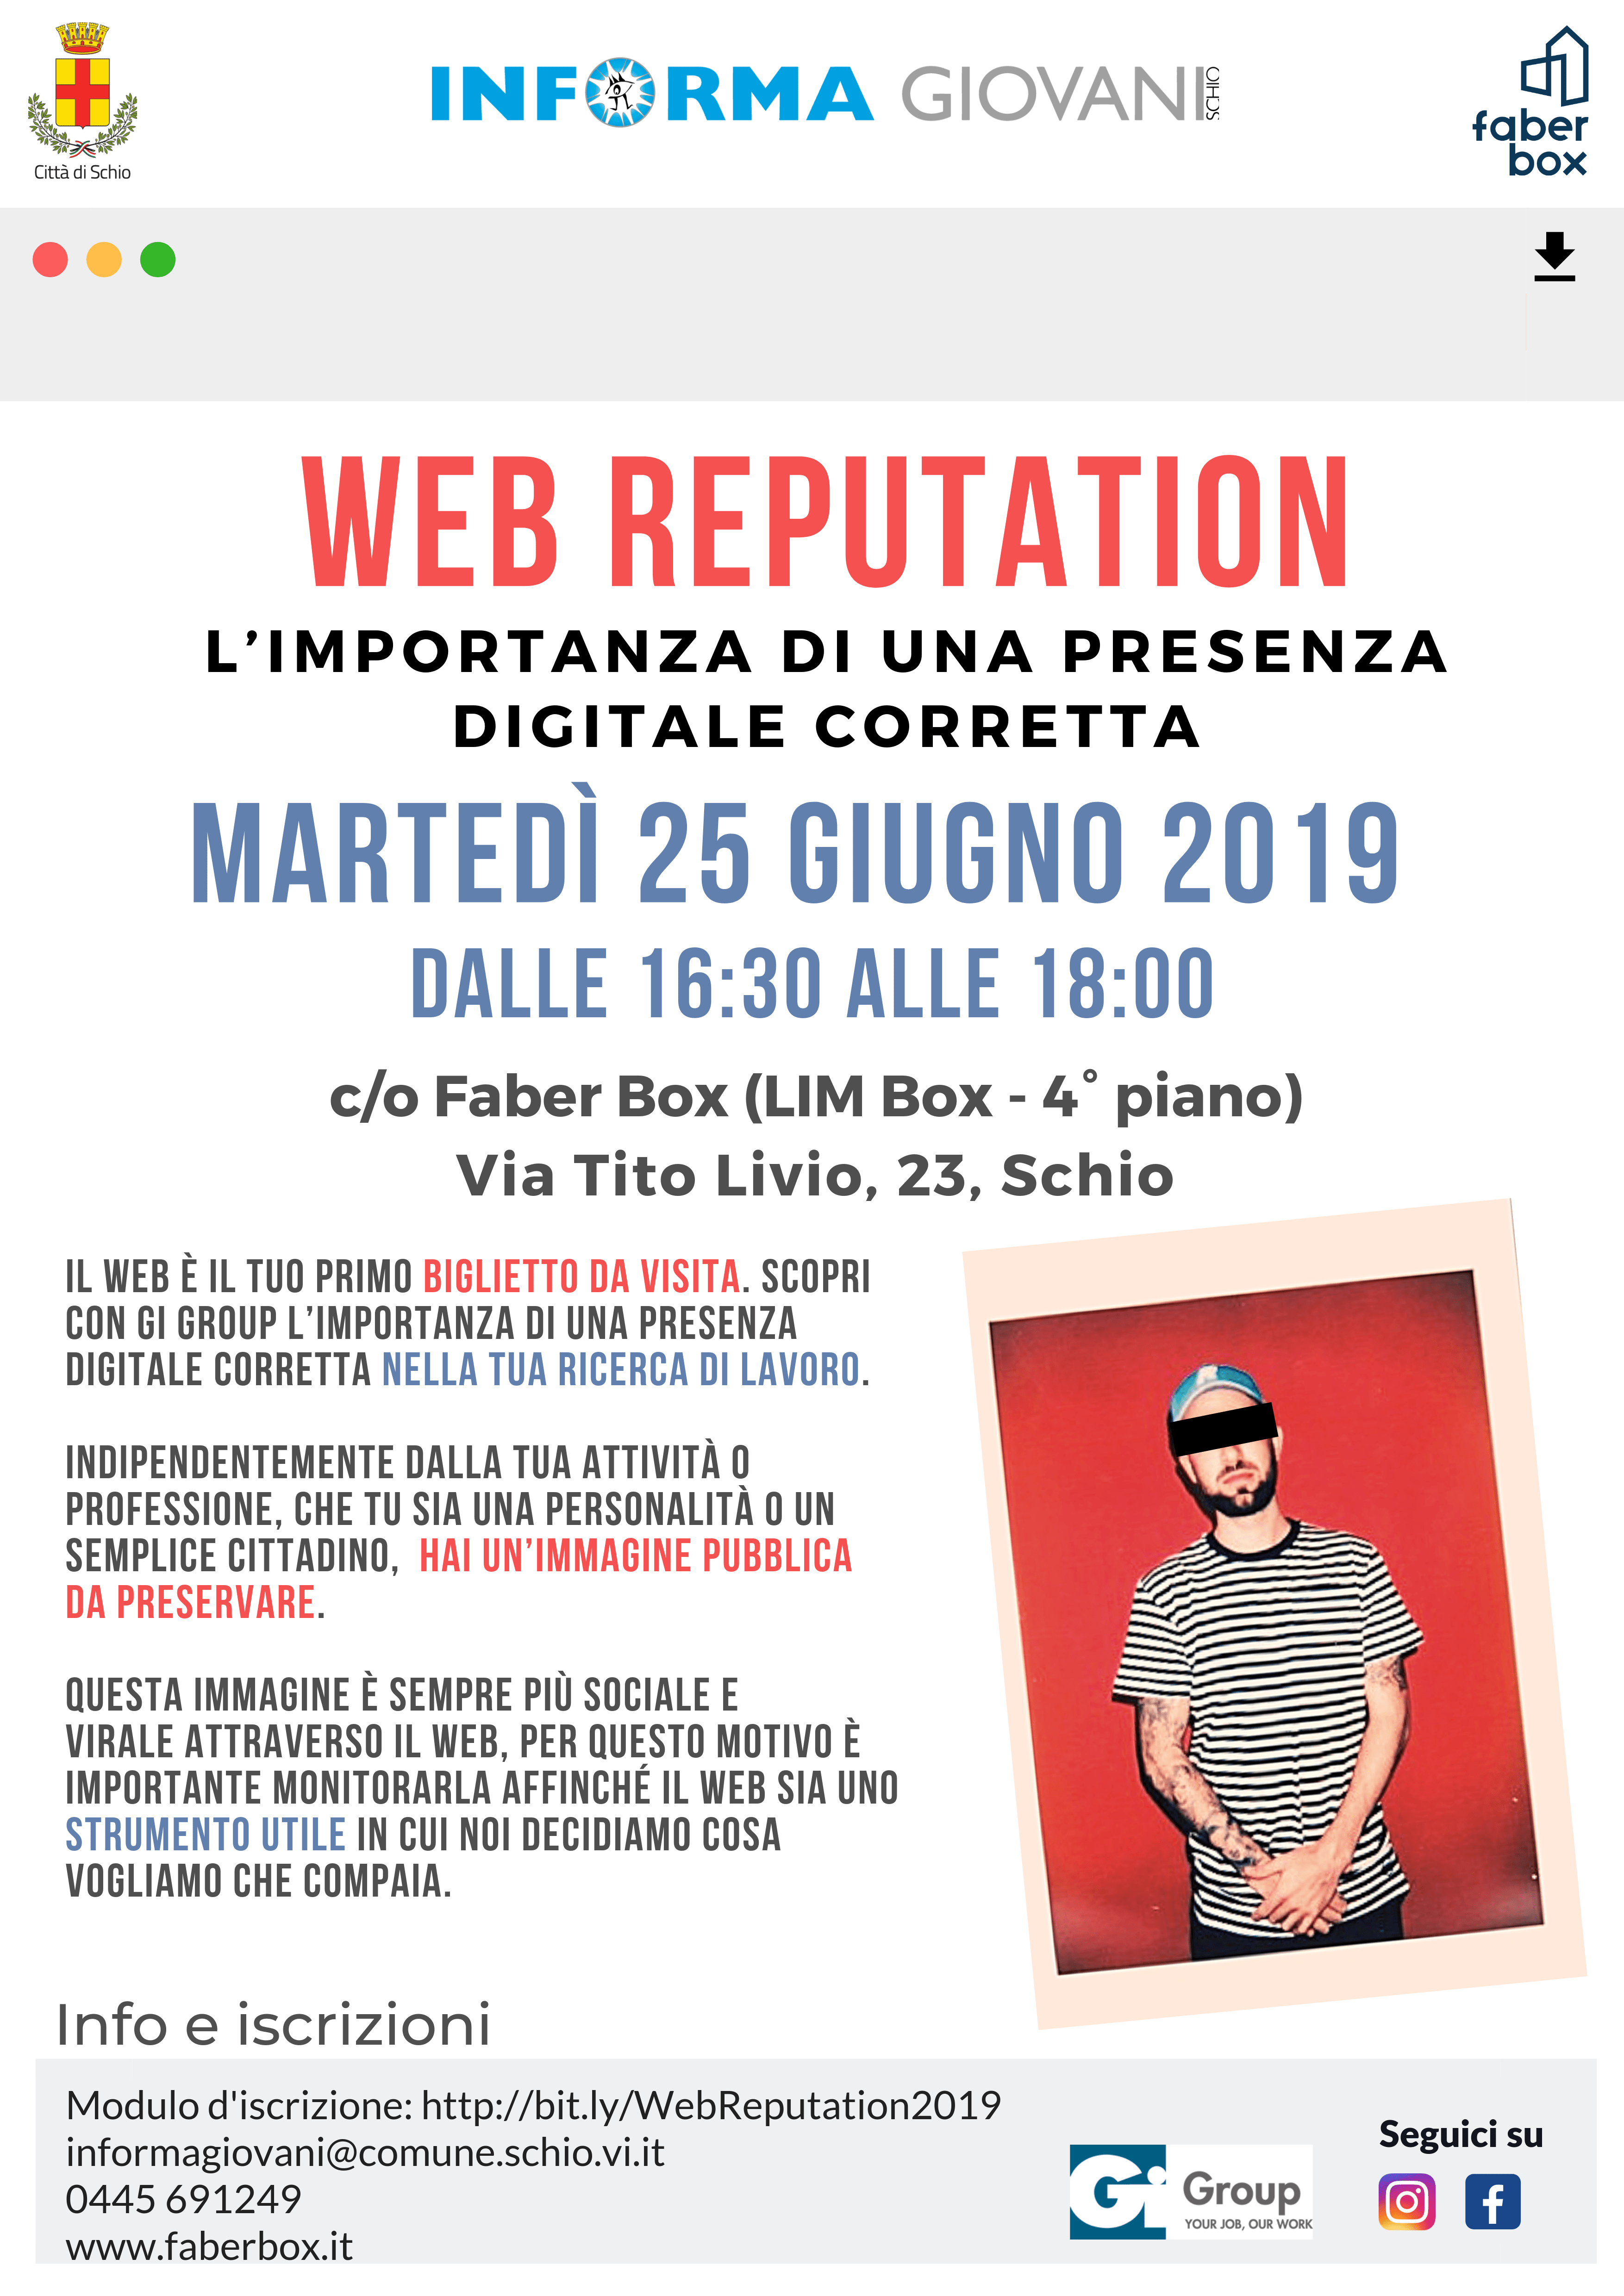 Web reputation - l'importanza di una presenza digitale corretta